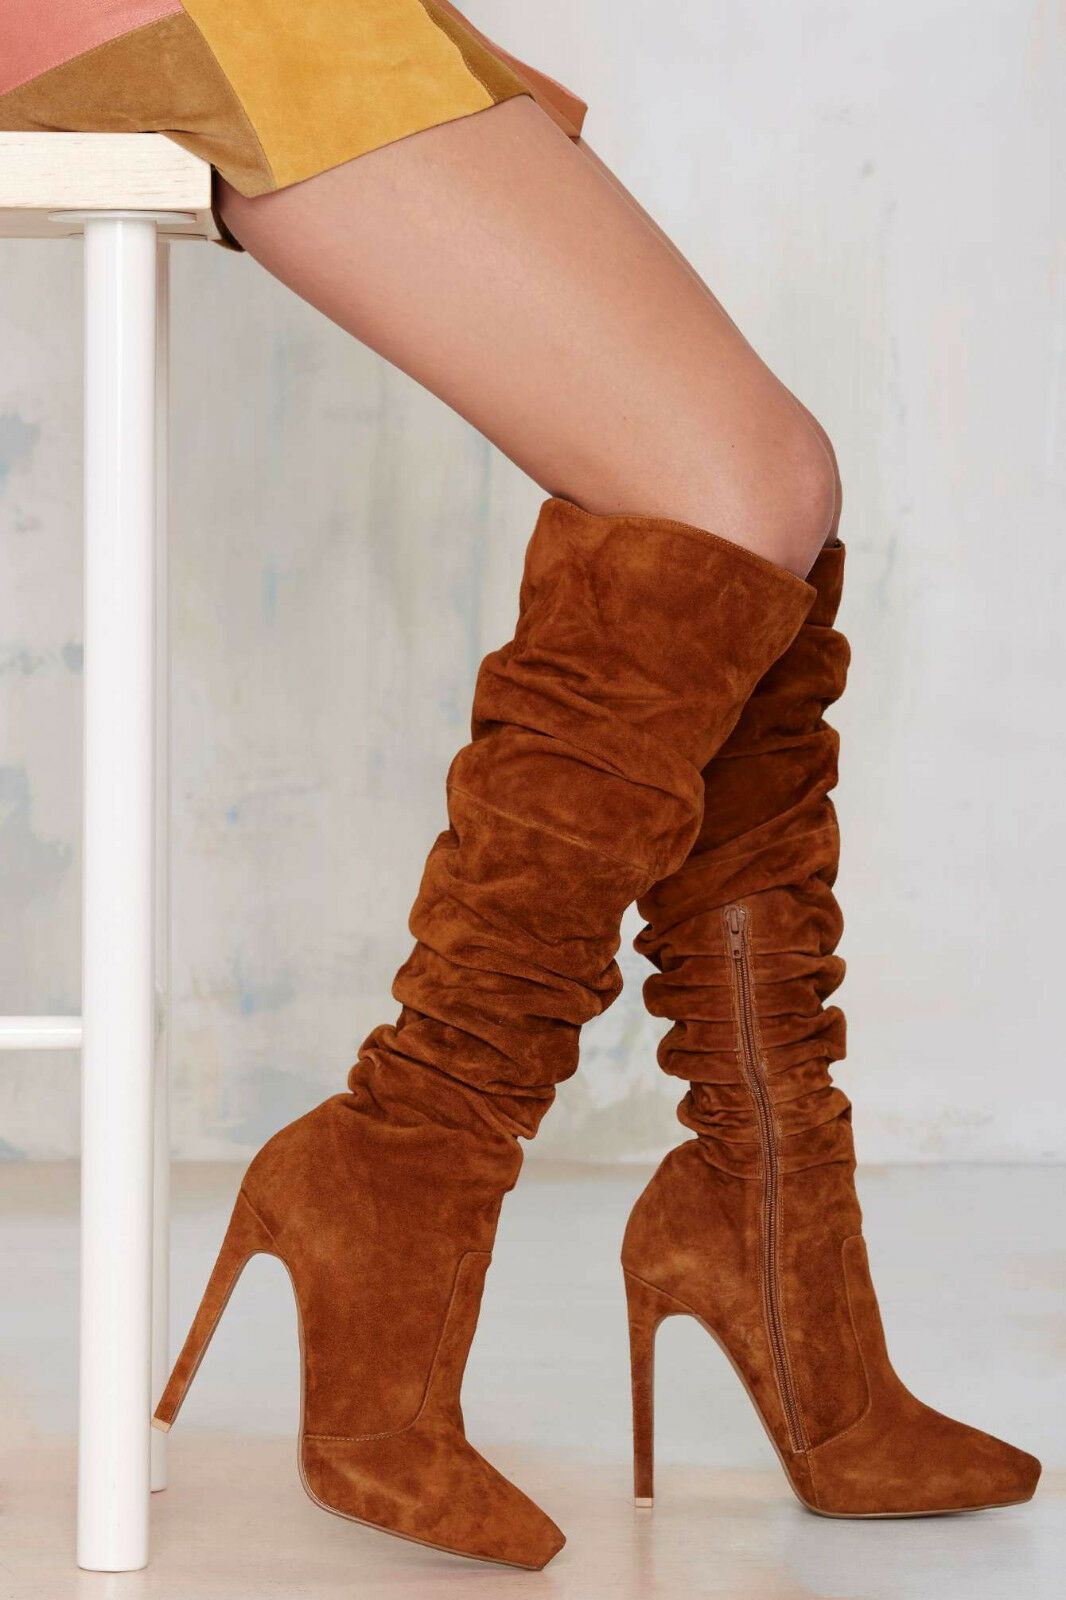 New  JEFFREY CAMPBELL  290 TAN CHESTNUT ALAMODE SUEDE avvio SHES SZ 6.5  all'ingrosso a buon mercato